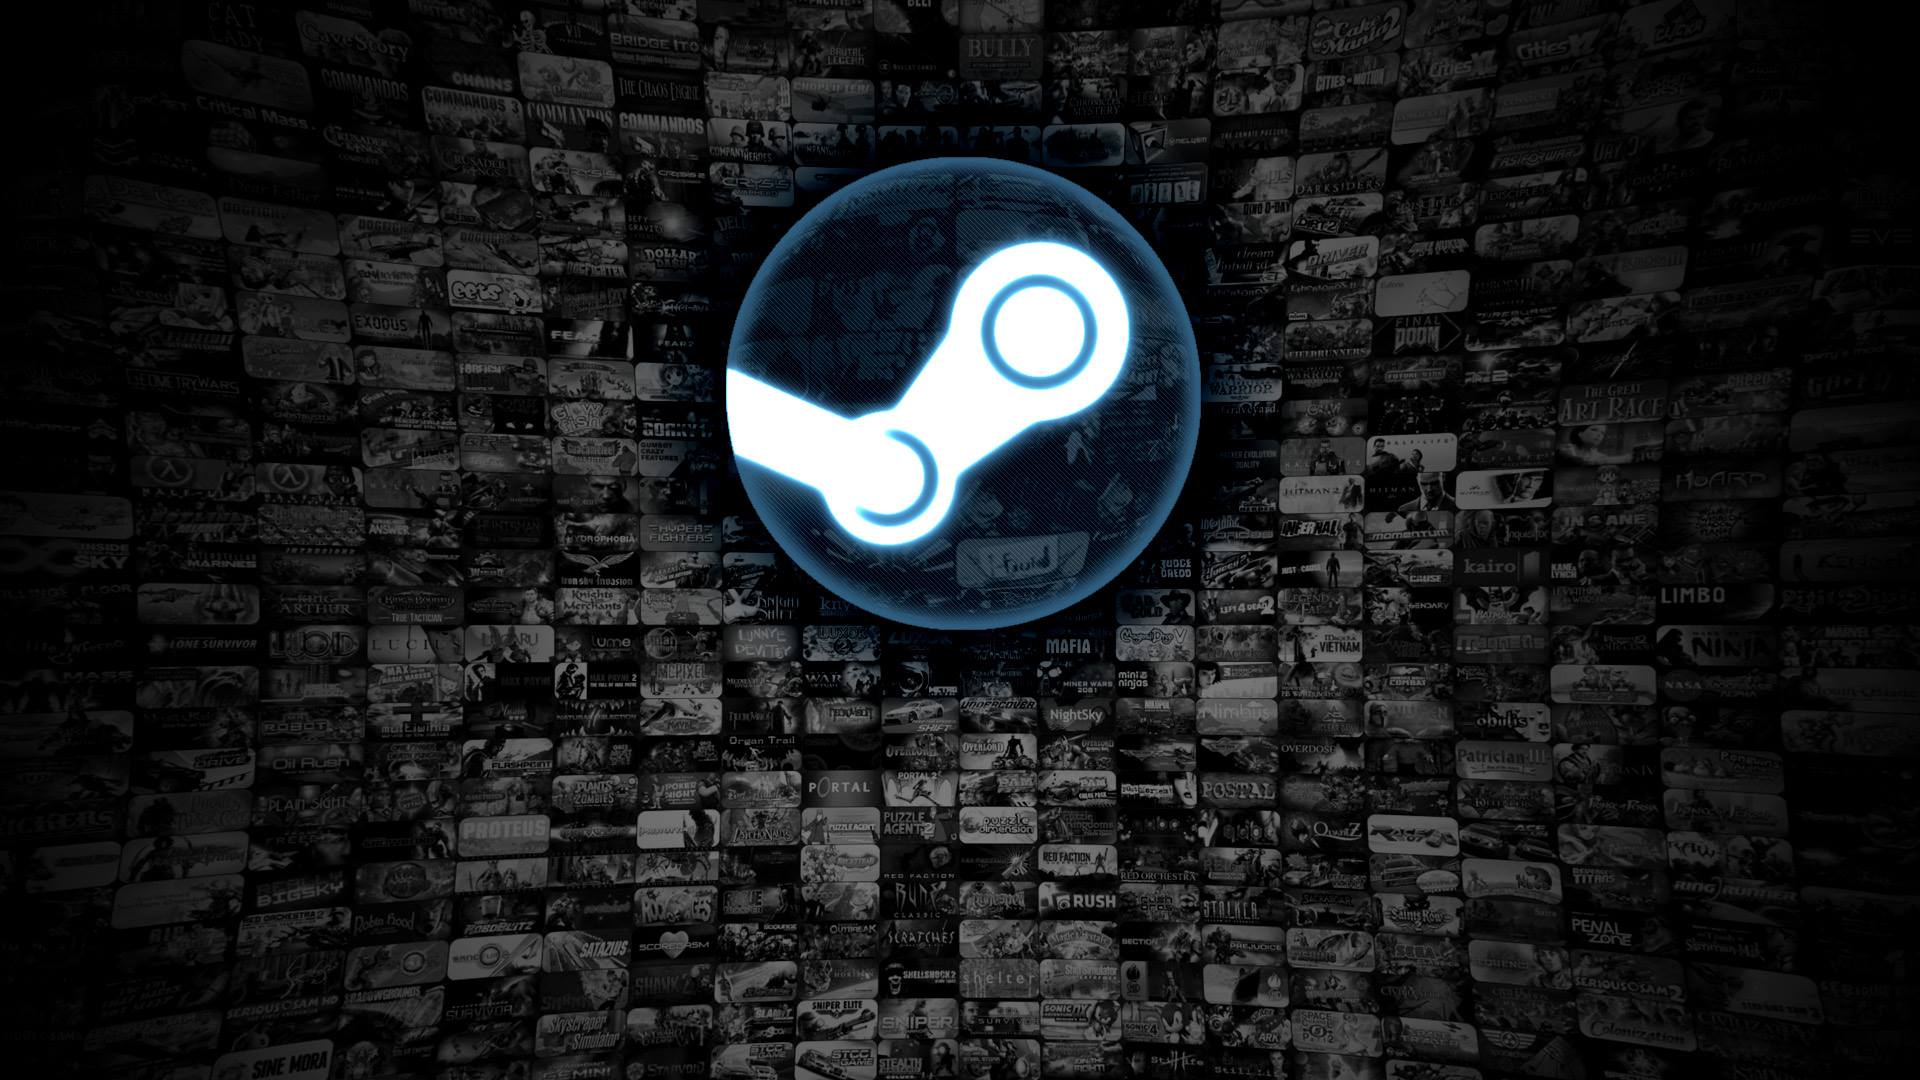 Valve drops Bitcoin as a Steam payment option